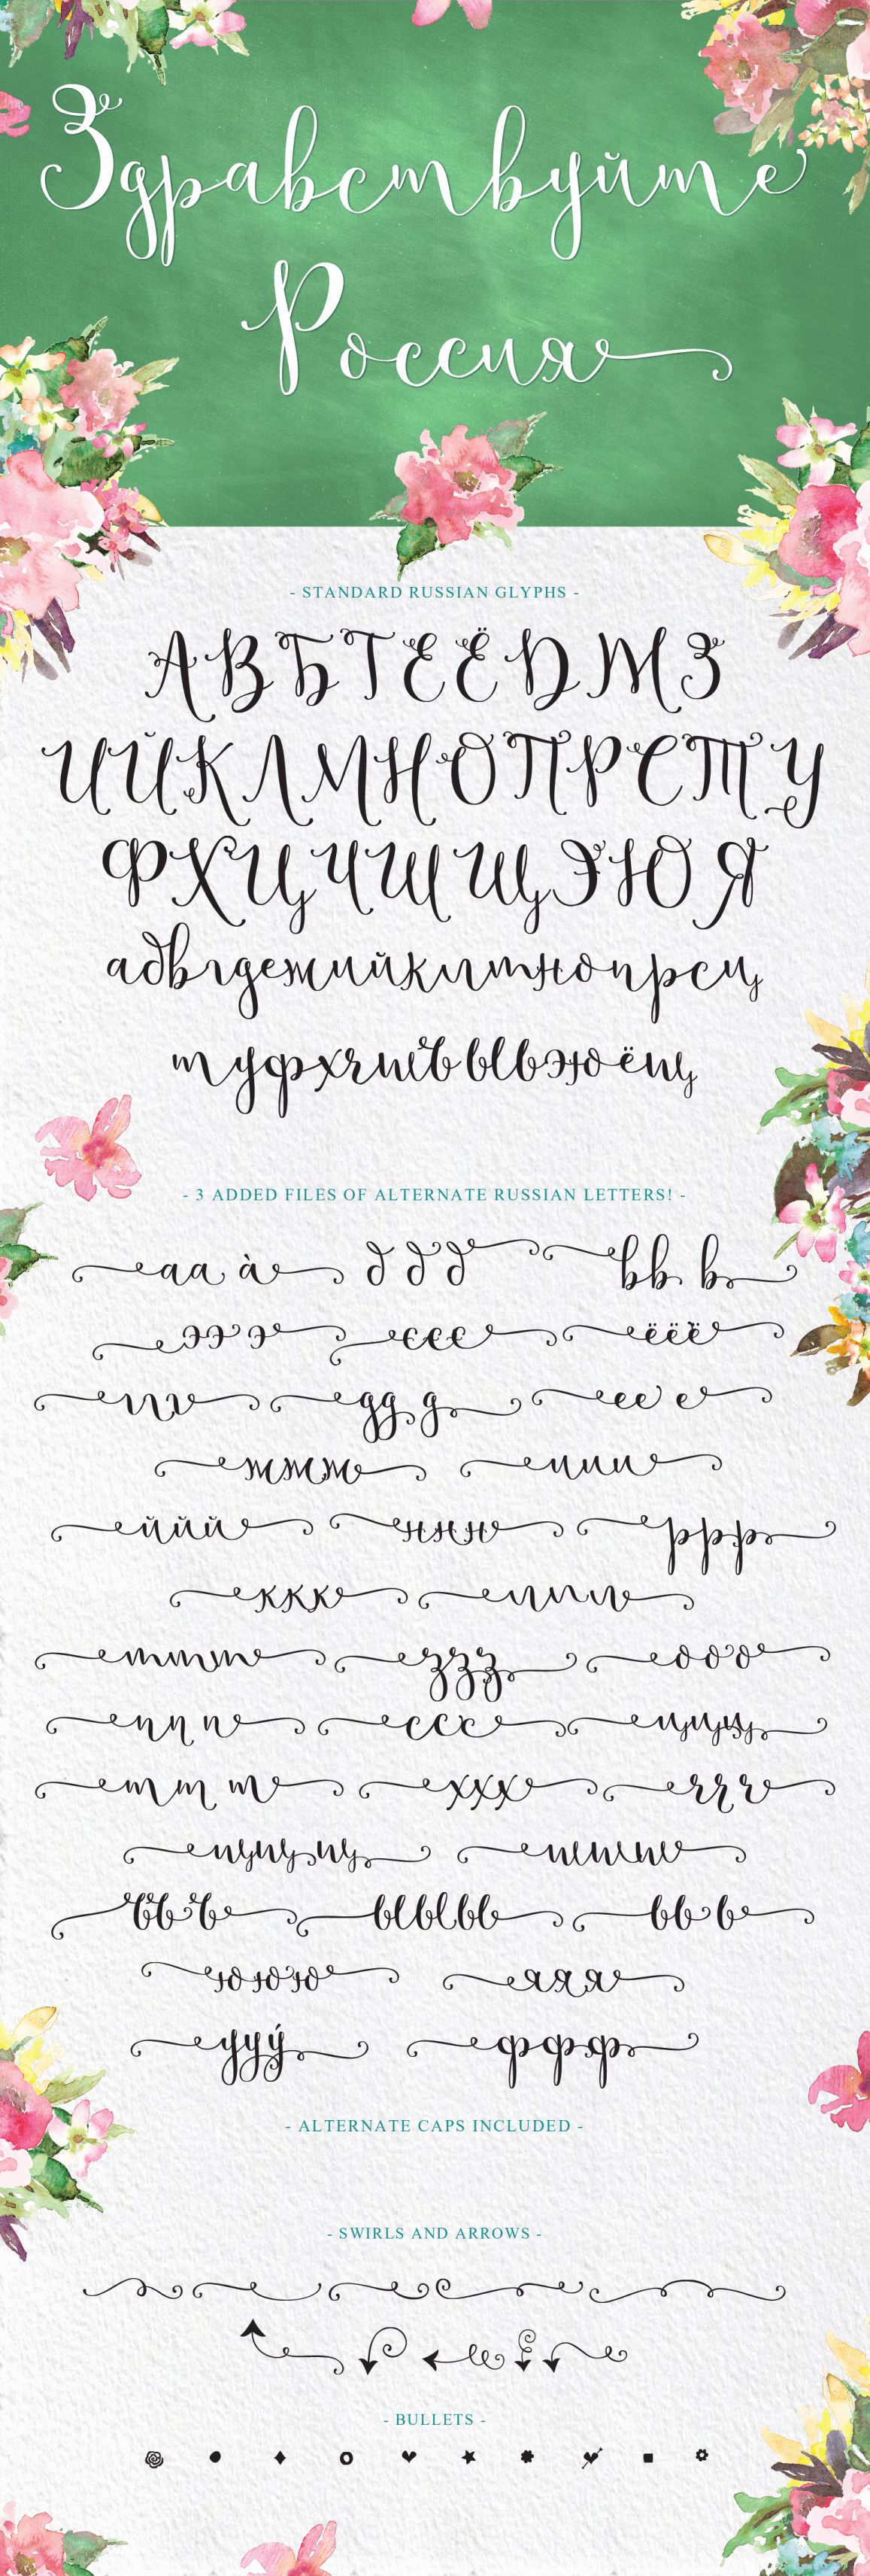 Butterfly Waltz Calligraphy Hand Lettered Russian Cryllic Script Cursive Font Decorative